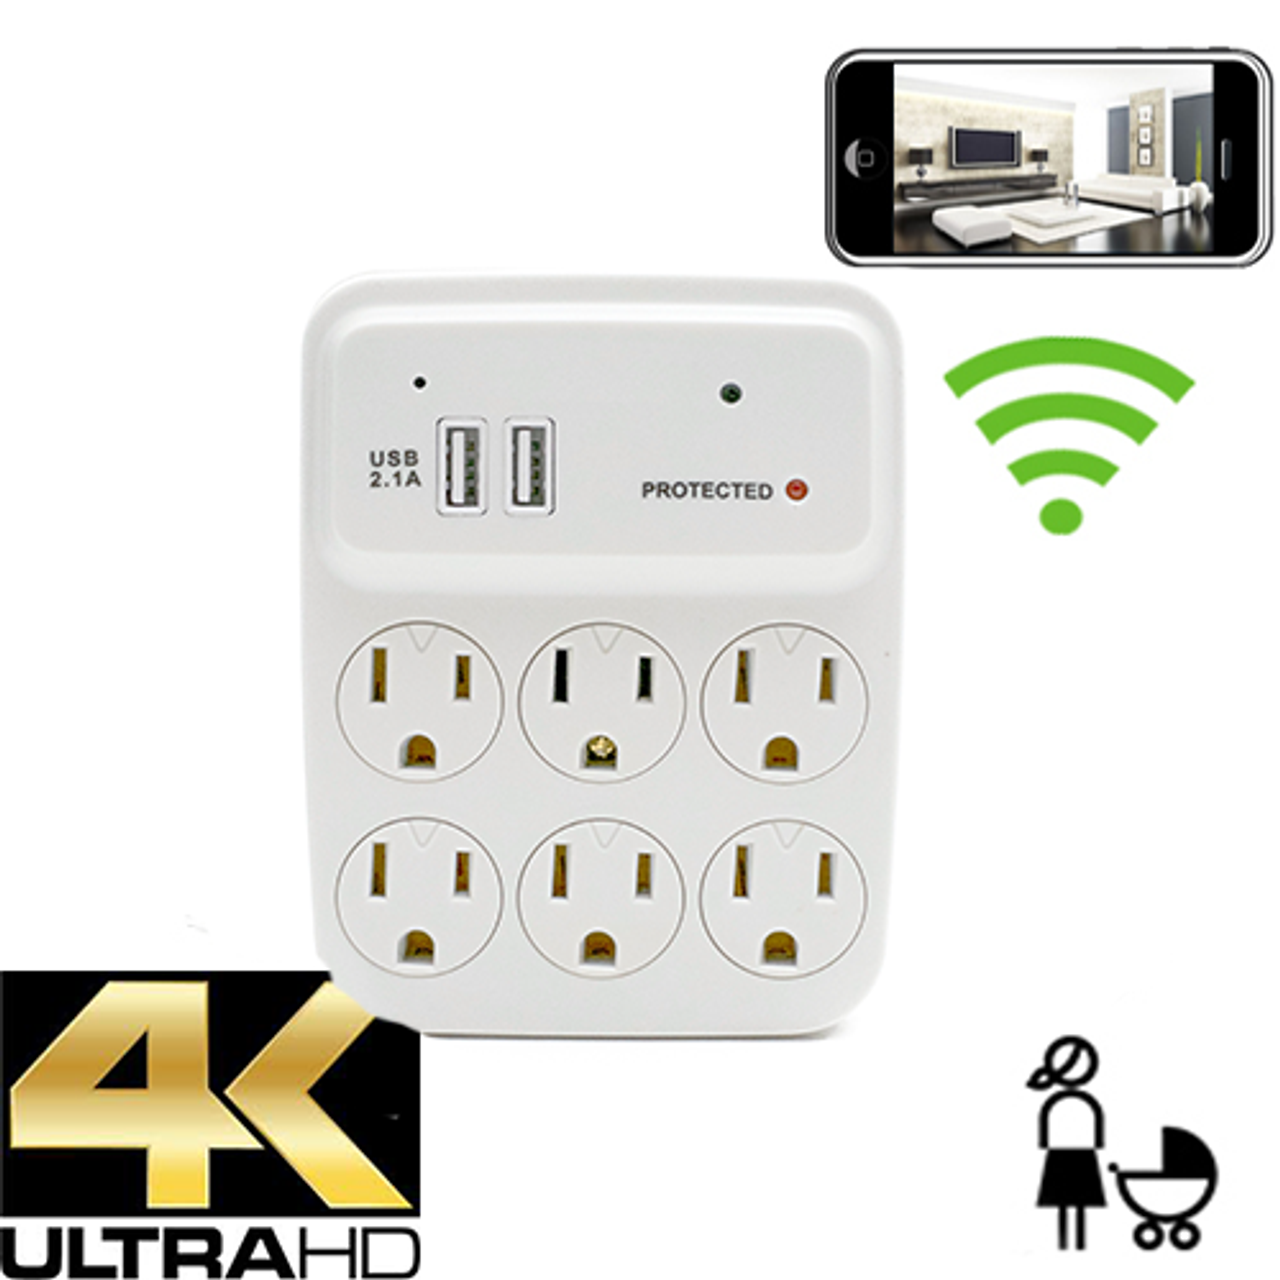 4K WiFi Outlet Nanny camera w/ Dvr-Wireless Streaming Video/ Mobile Viewing/SD Card Recording